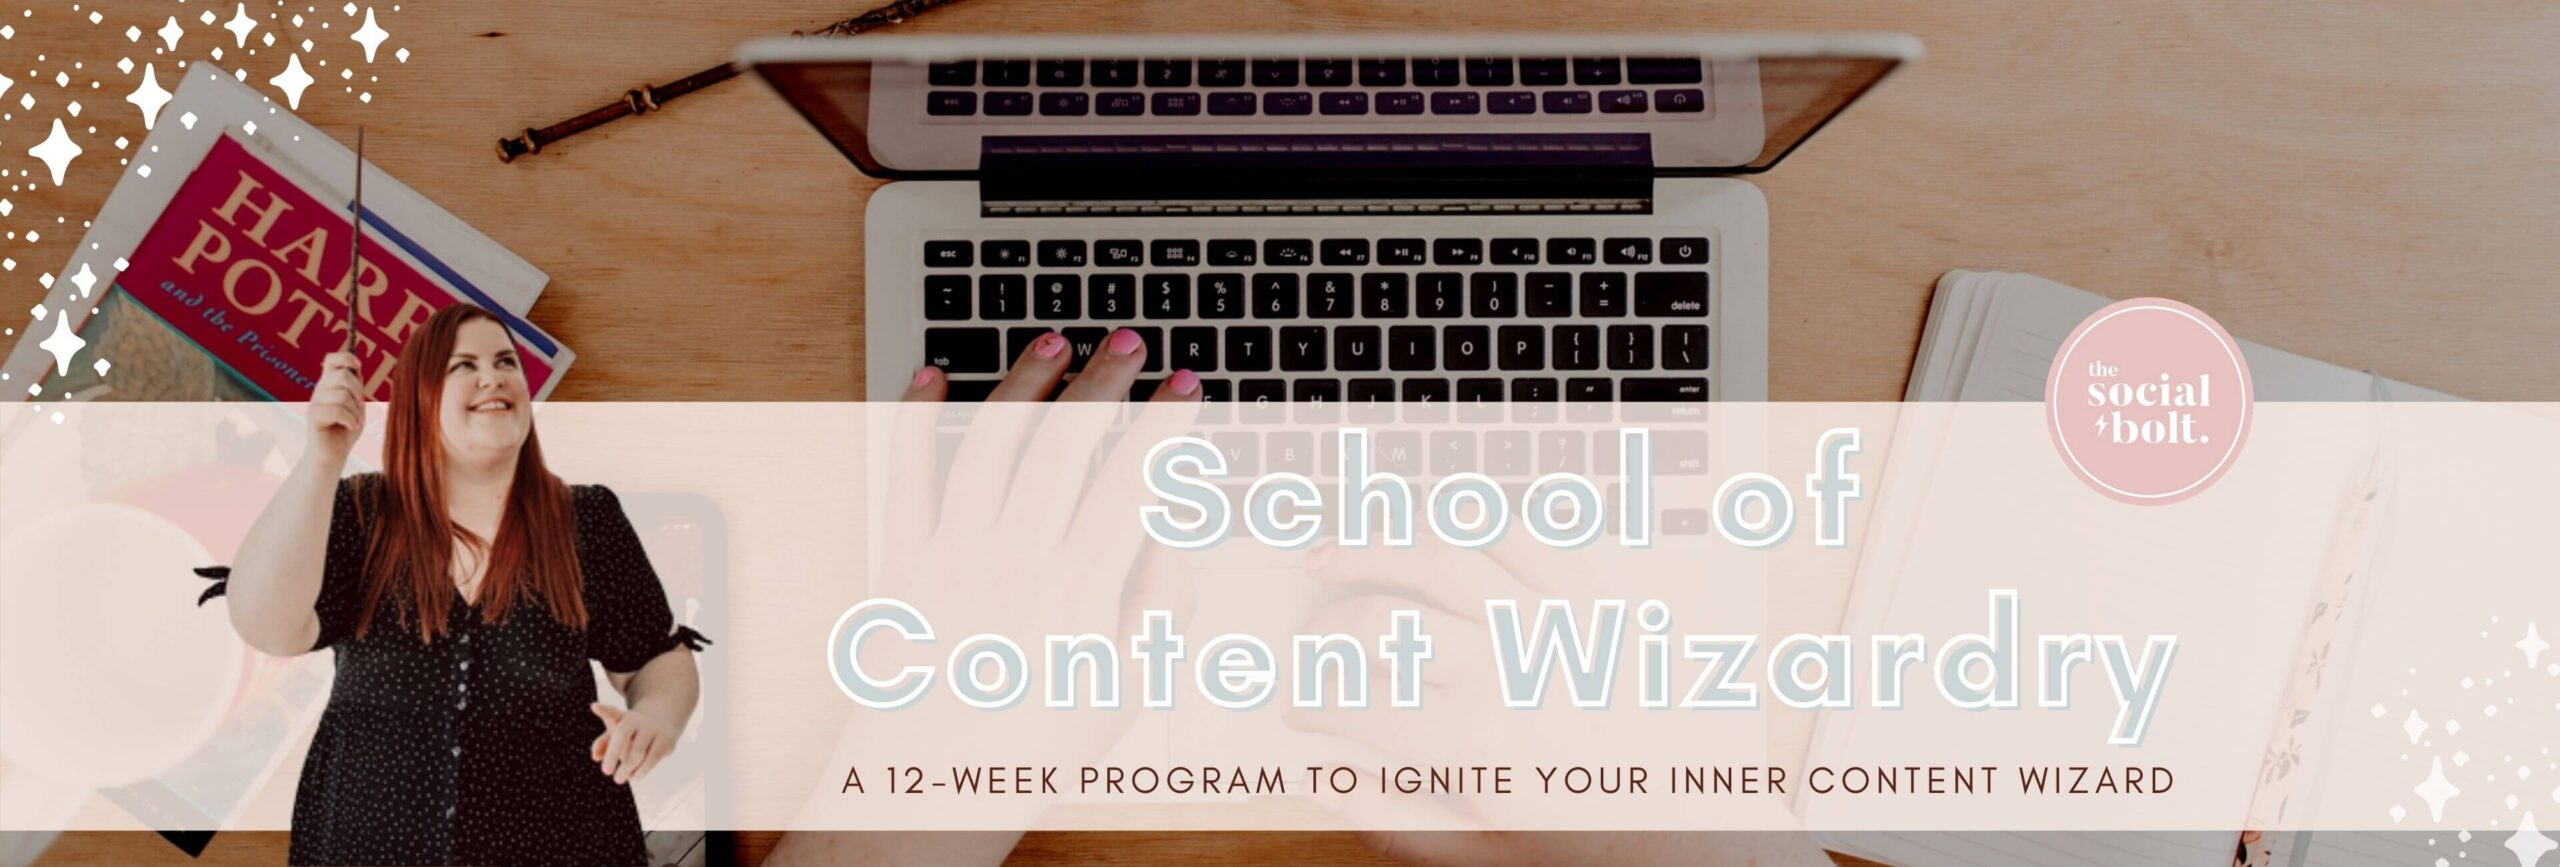 The Social Bolt School of Content Wizardry